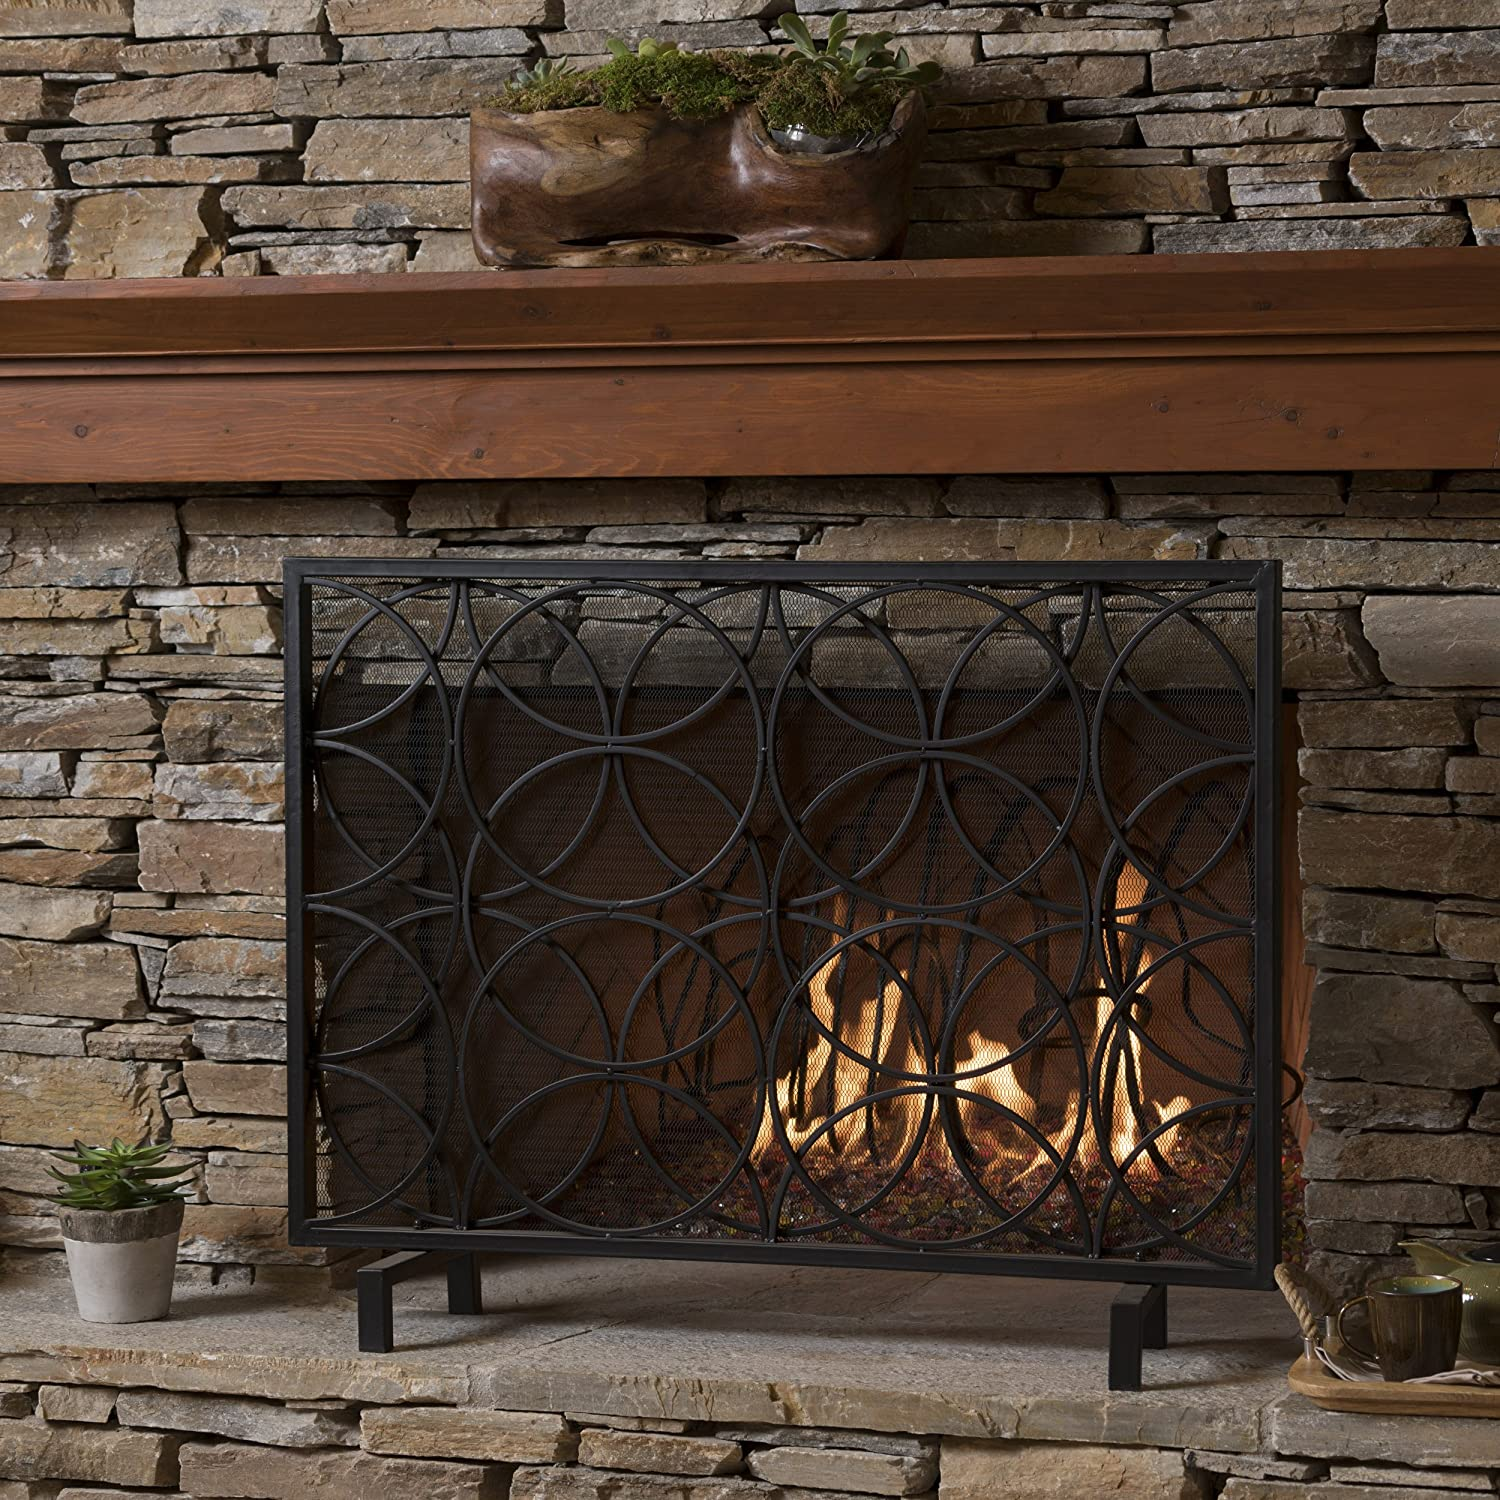 Veritas Single Panel Black Iron Fireplace Screen GDF Studio